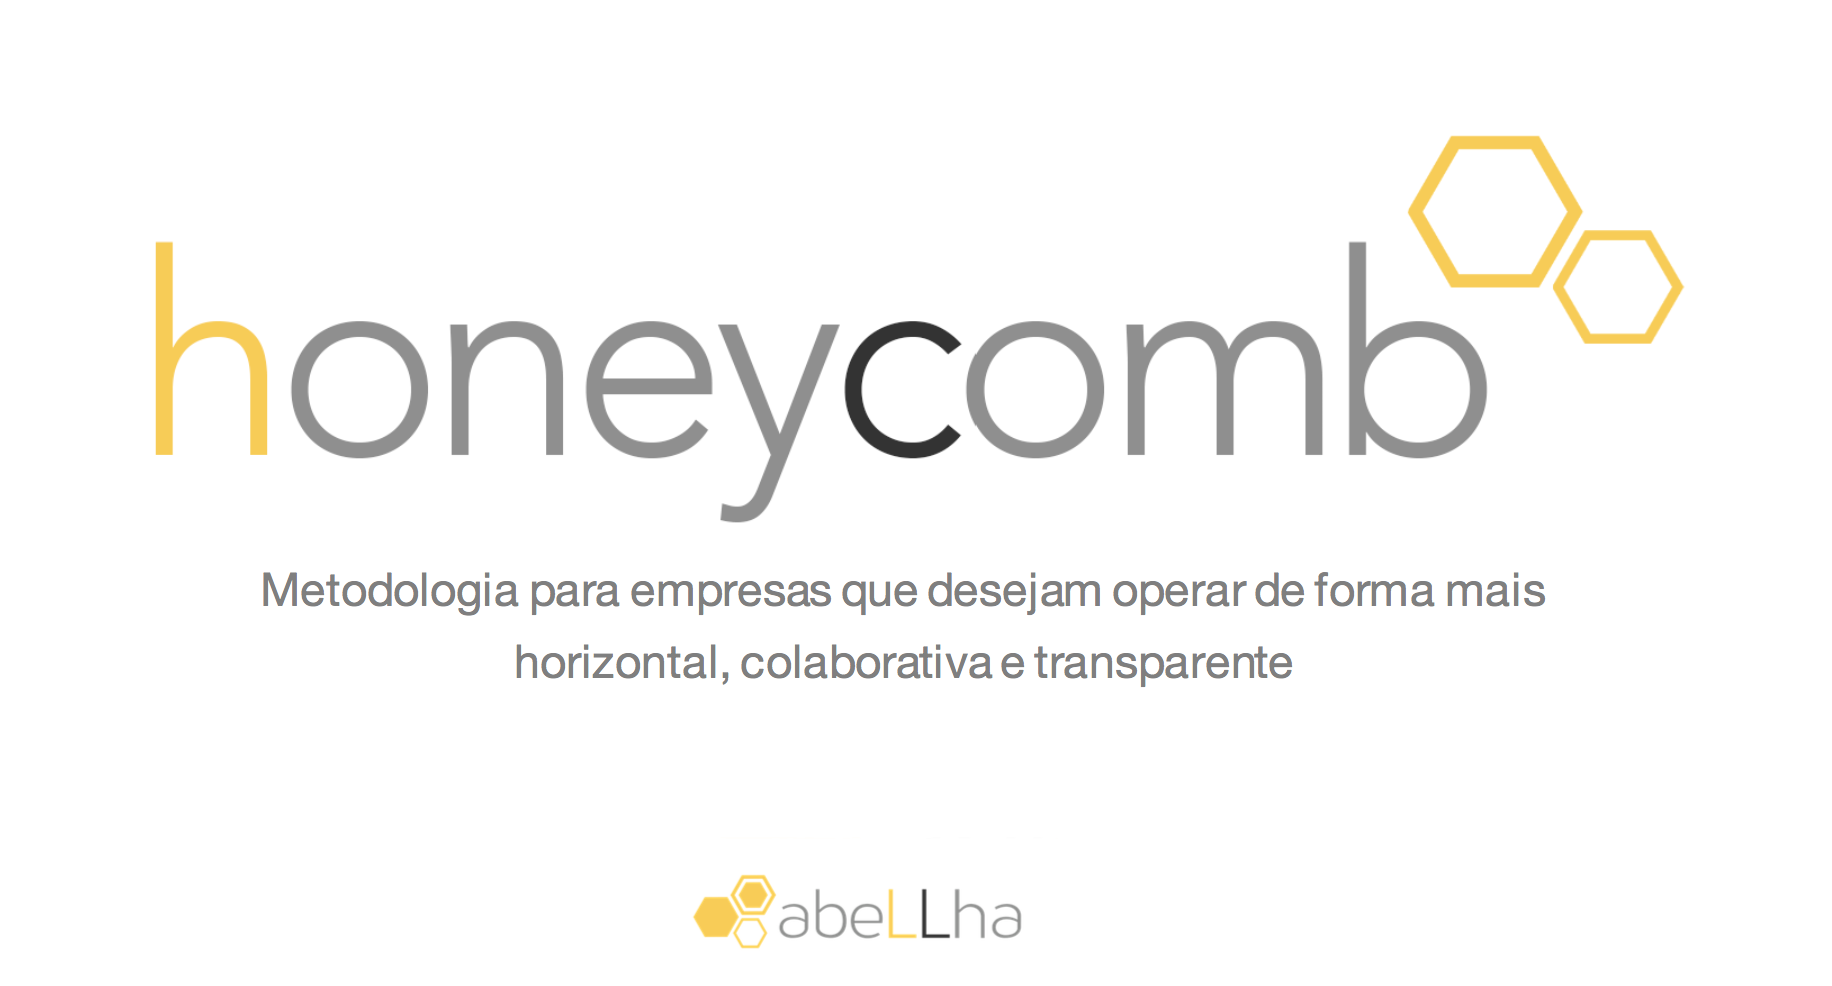 Honeycomb raises $ 100,000 from angel investor